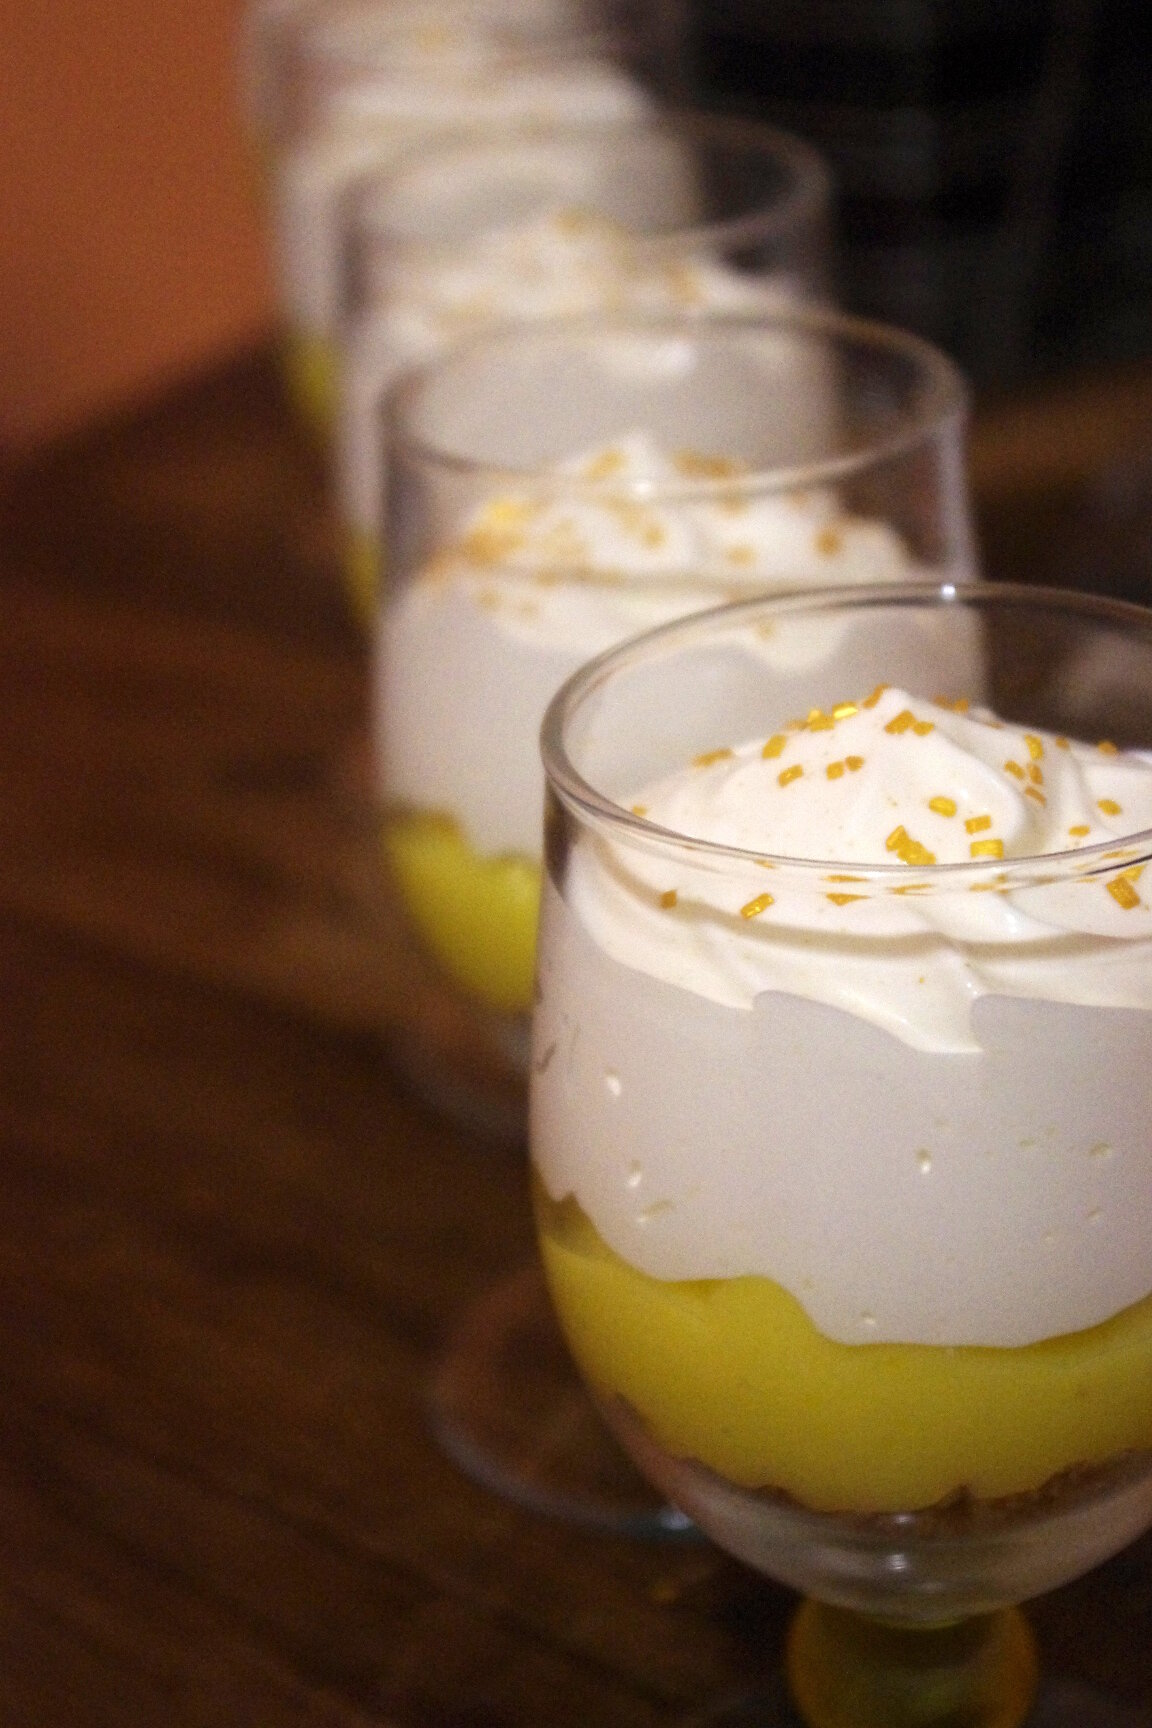 Verrines comme une tarte au citron. Lemon curd, palets bretons & chantilly maison.